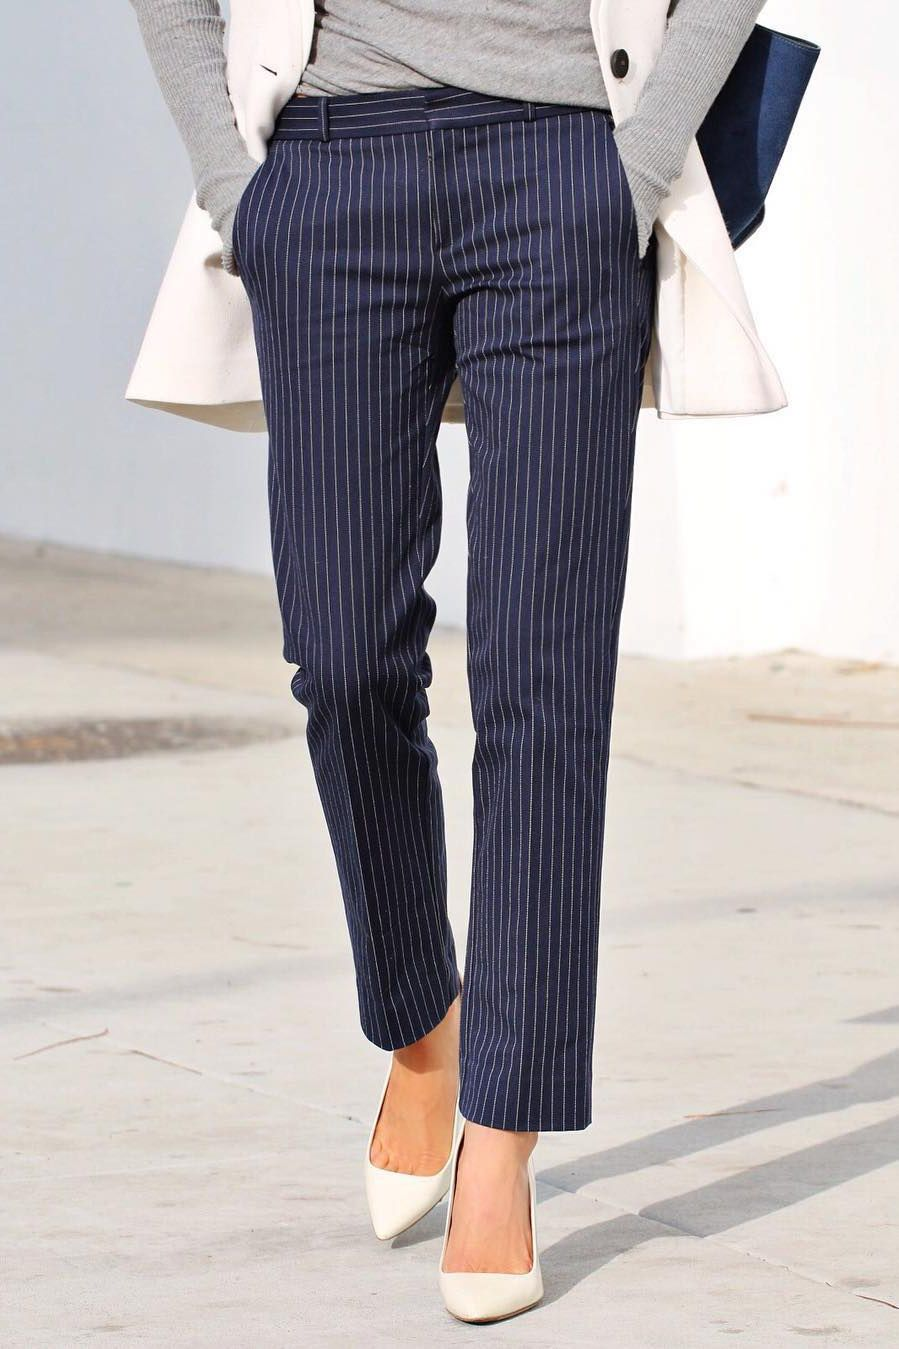 bdb197467da Keep your look classic in our navy and white pinstripe straight leg pants